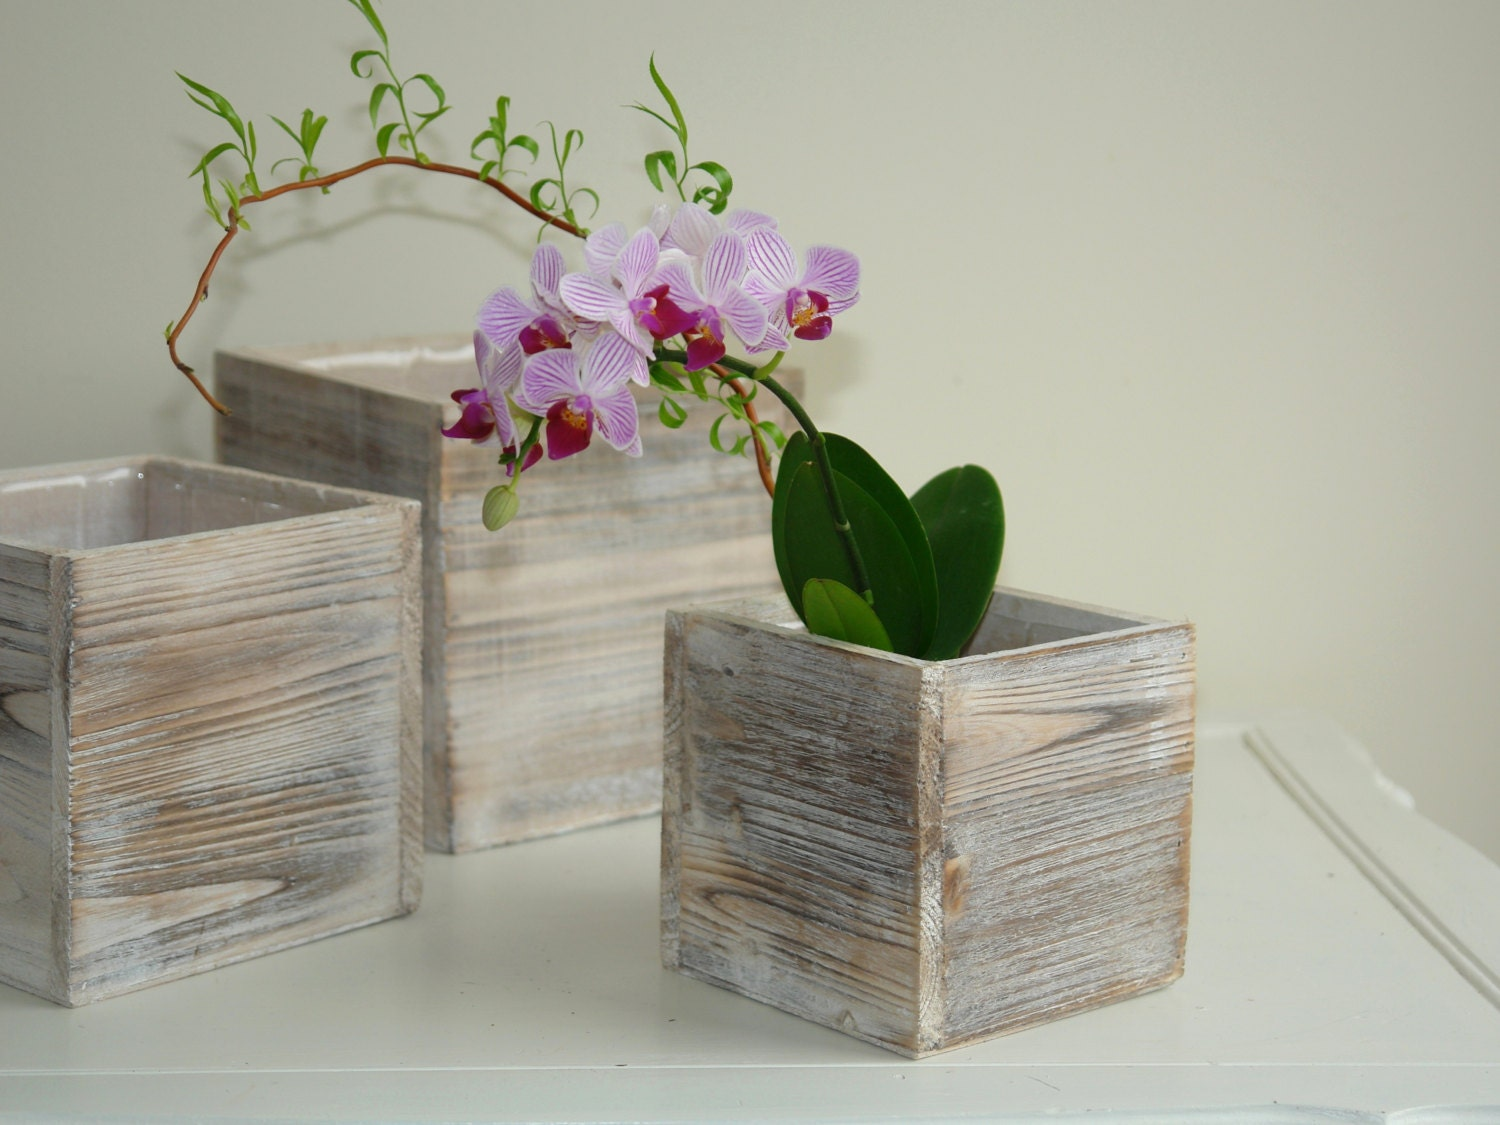 Wood box woodland planter flowers vases rustic pot square - Wooden containers for flowers ...